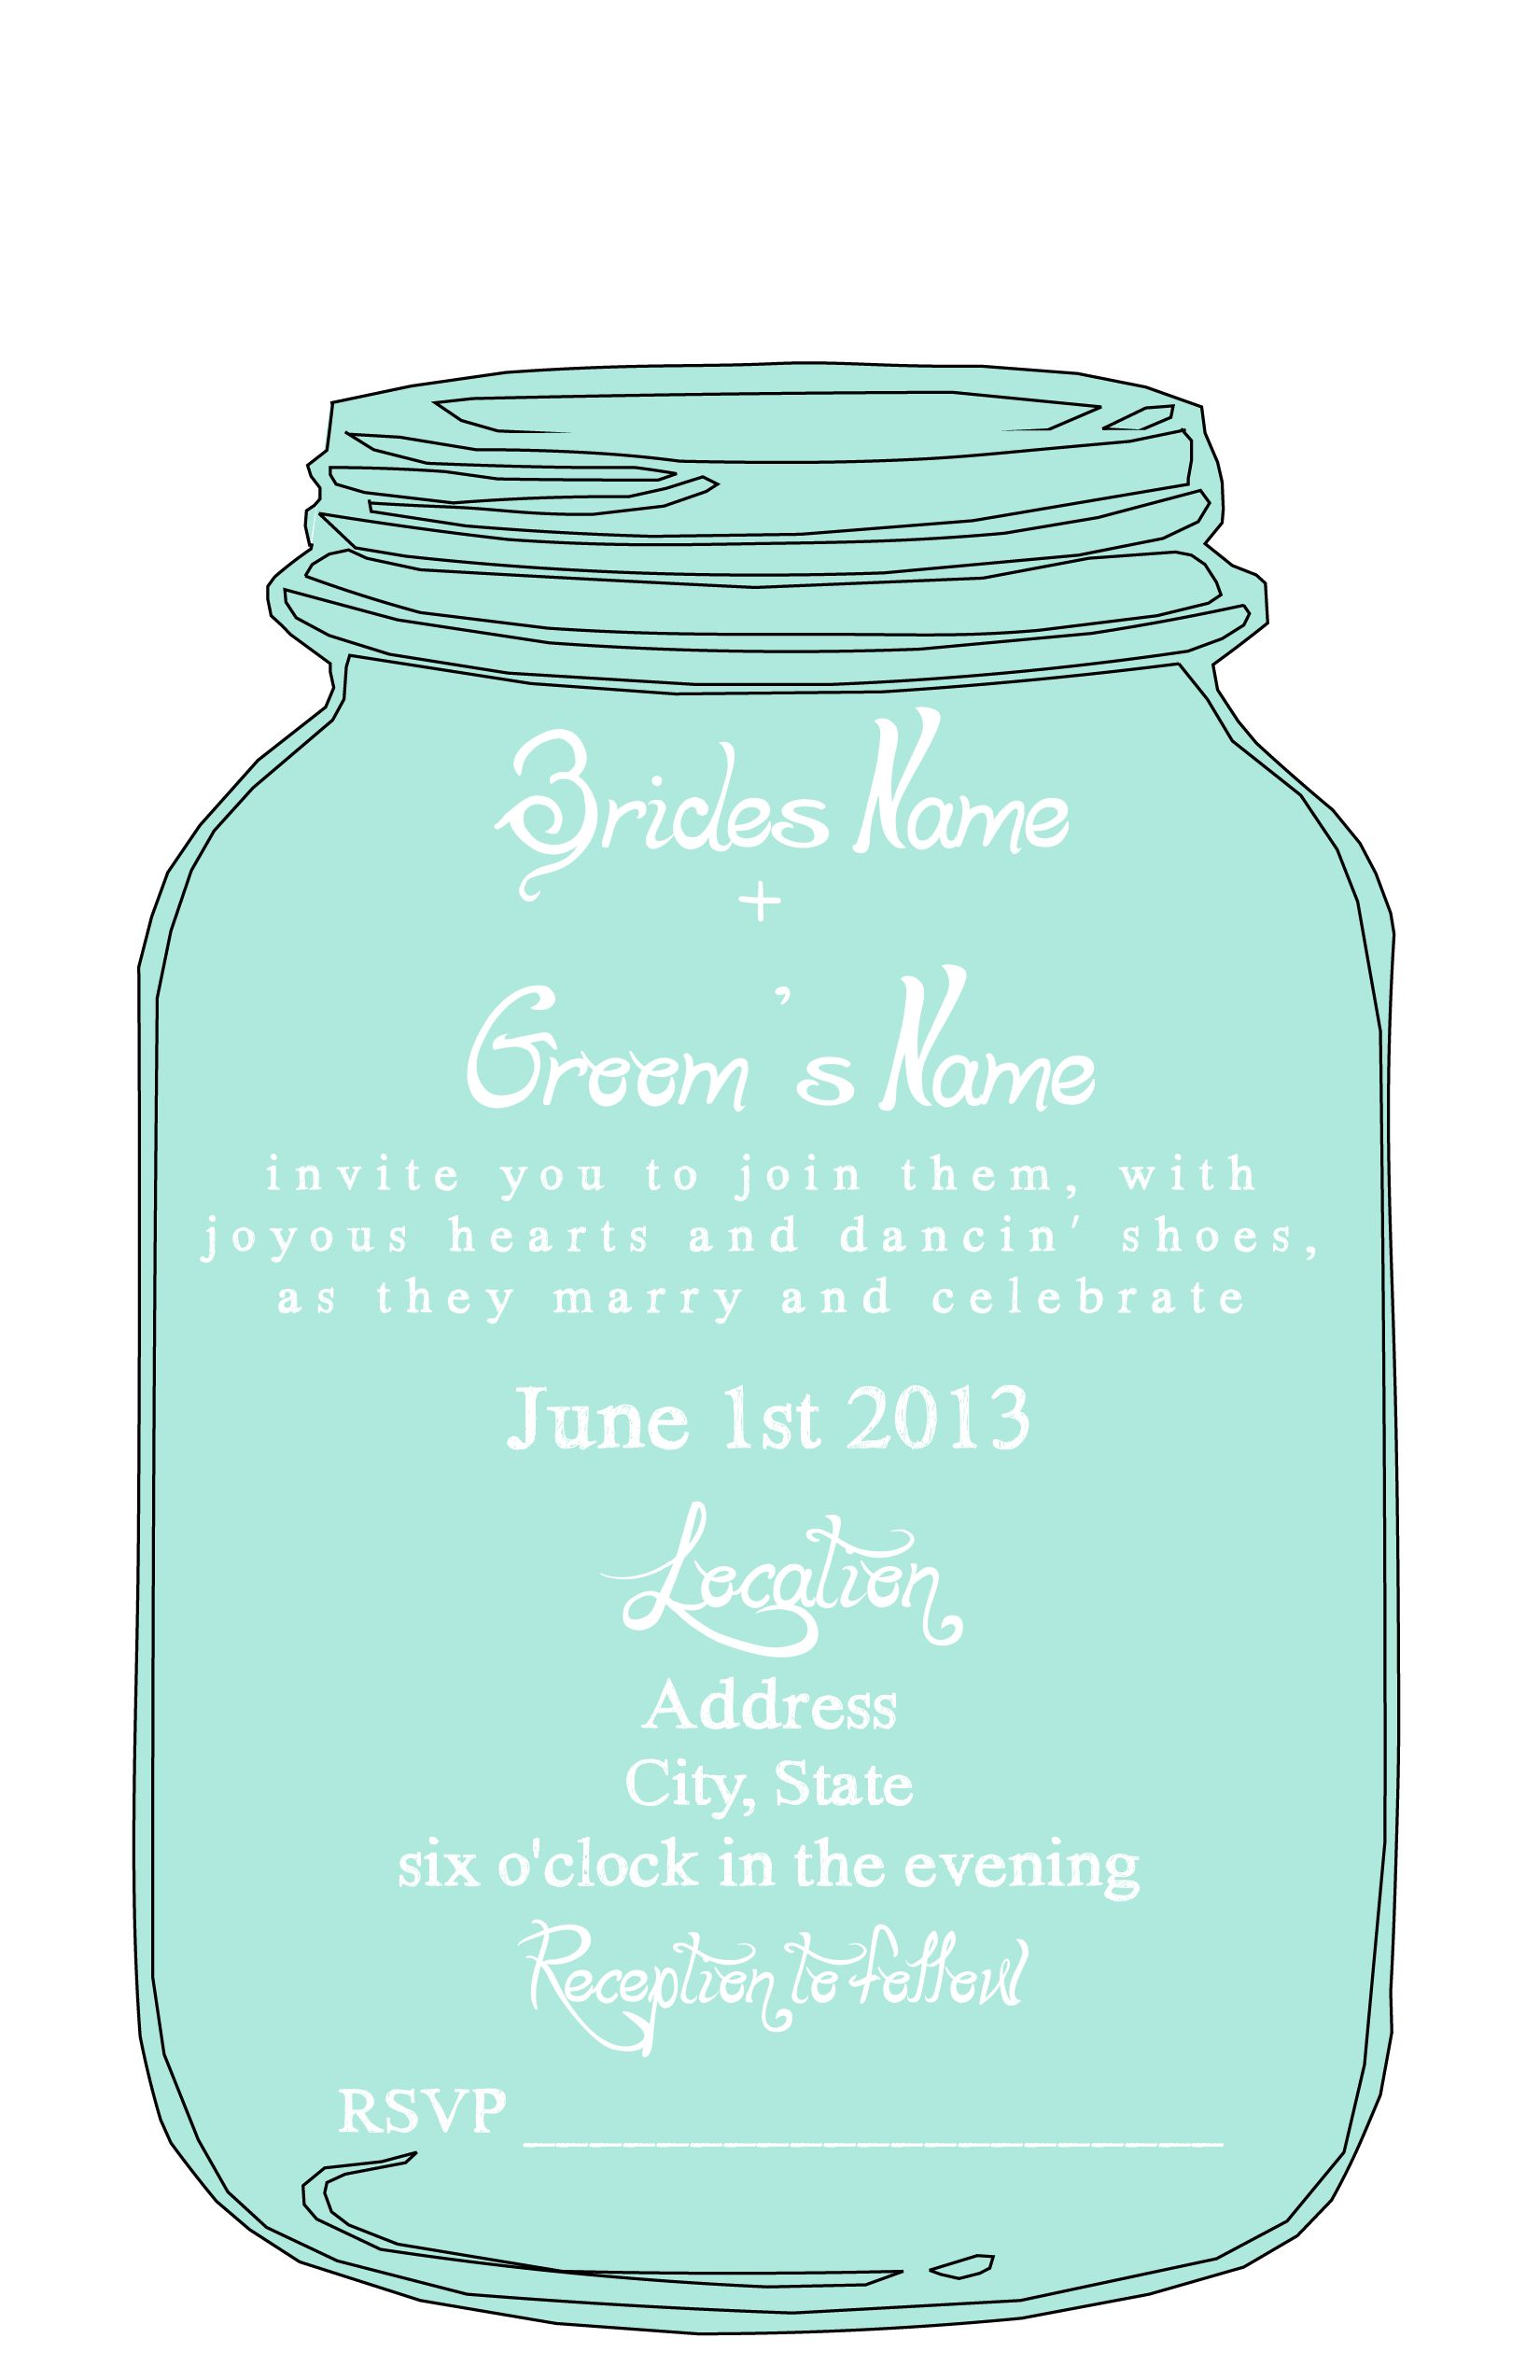 Free wedding invitation templates love this mason jar httpwww free wedding invitation templates love this mason jar httpweddingchicksfreebiesinvitation suitesmason jar invitation suite stopboris Gallery